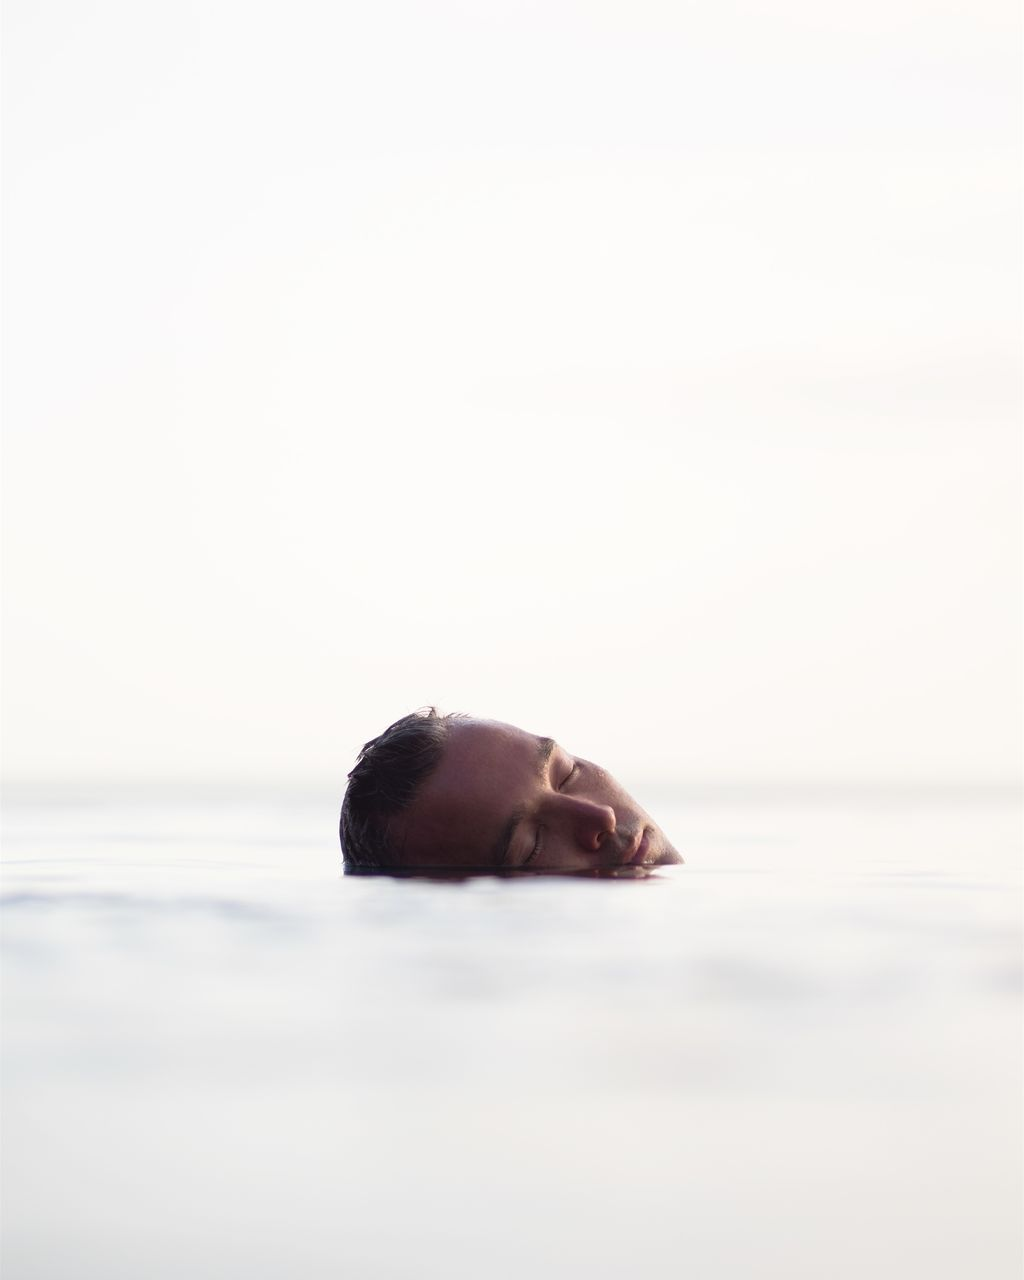 Man with eyes closed swimming in sea against clear sky